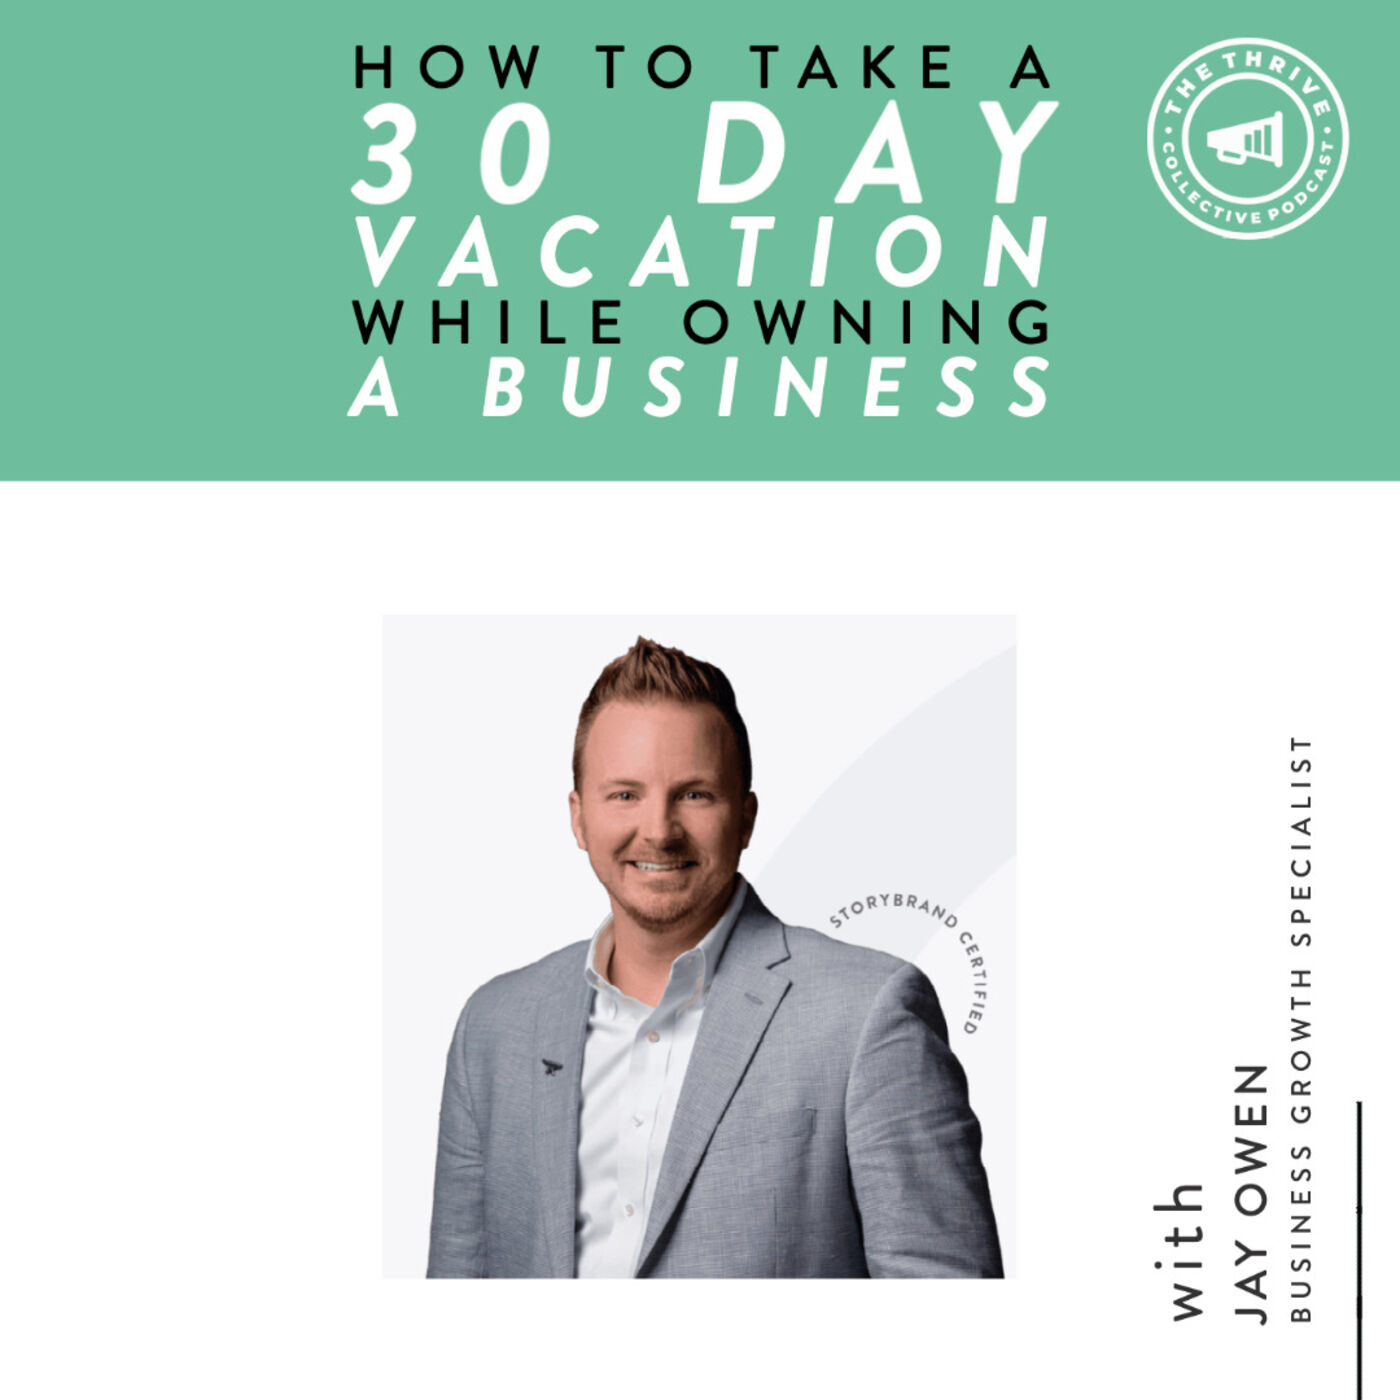 How to Take a 30 Day Vacation While Owning a Business with Jay Owen